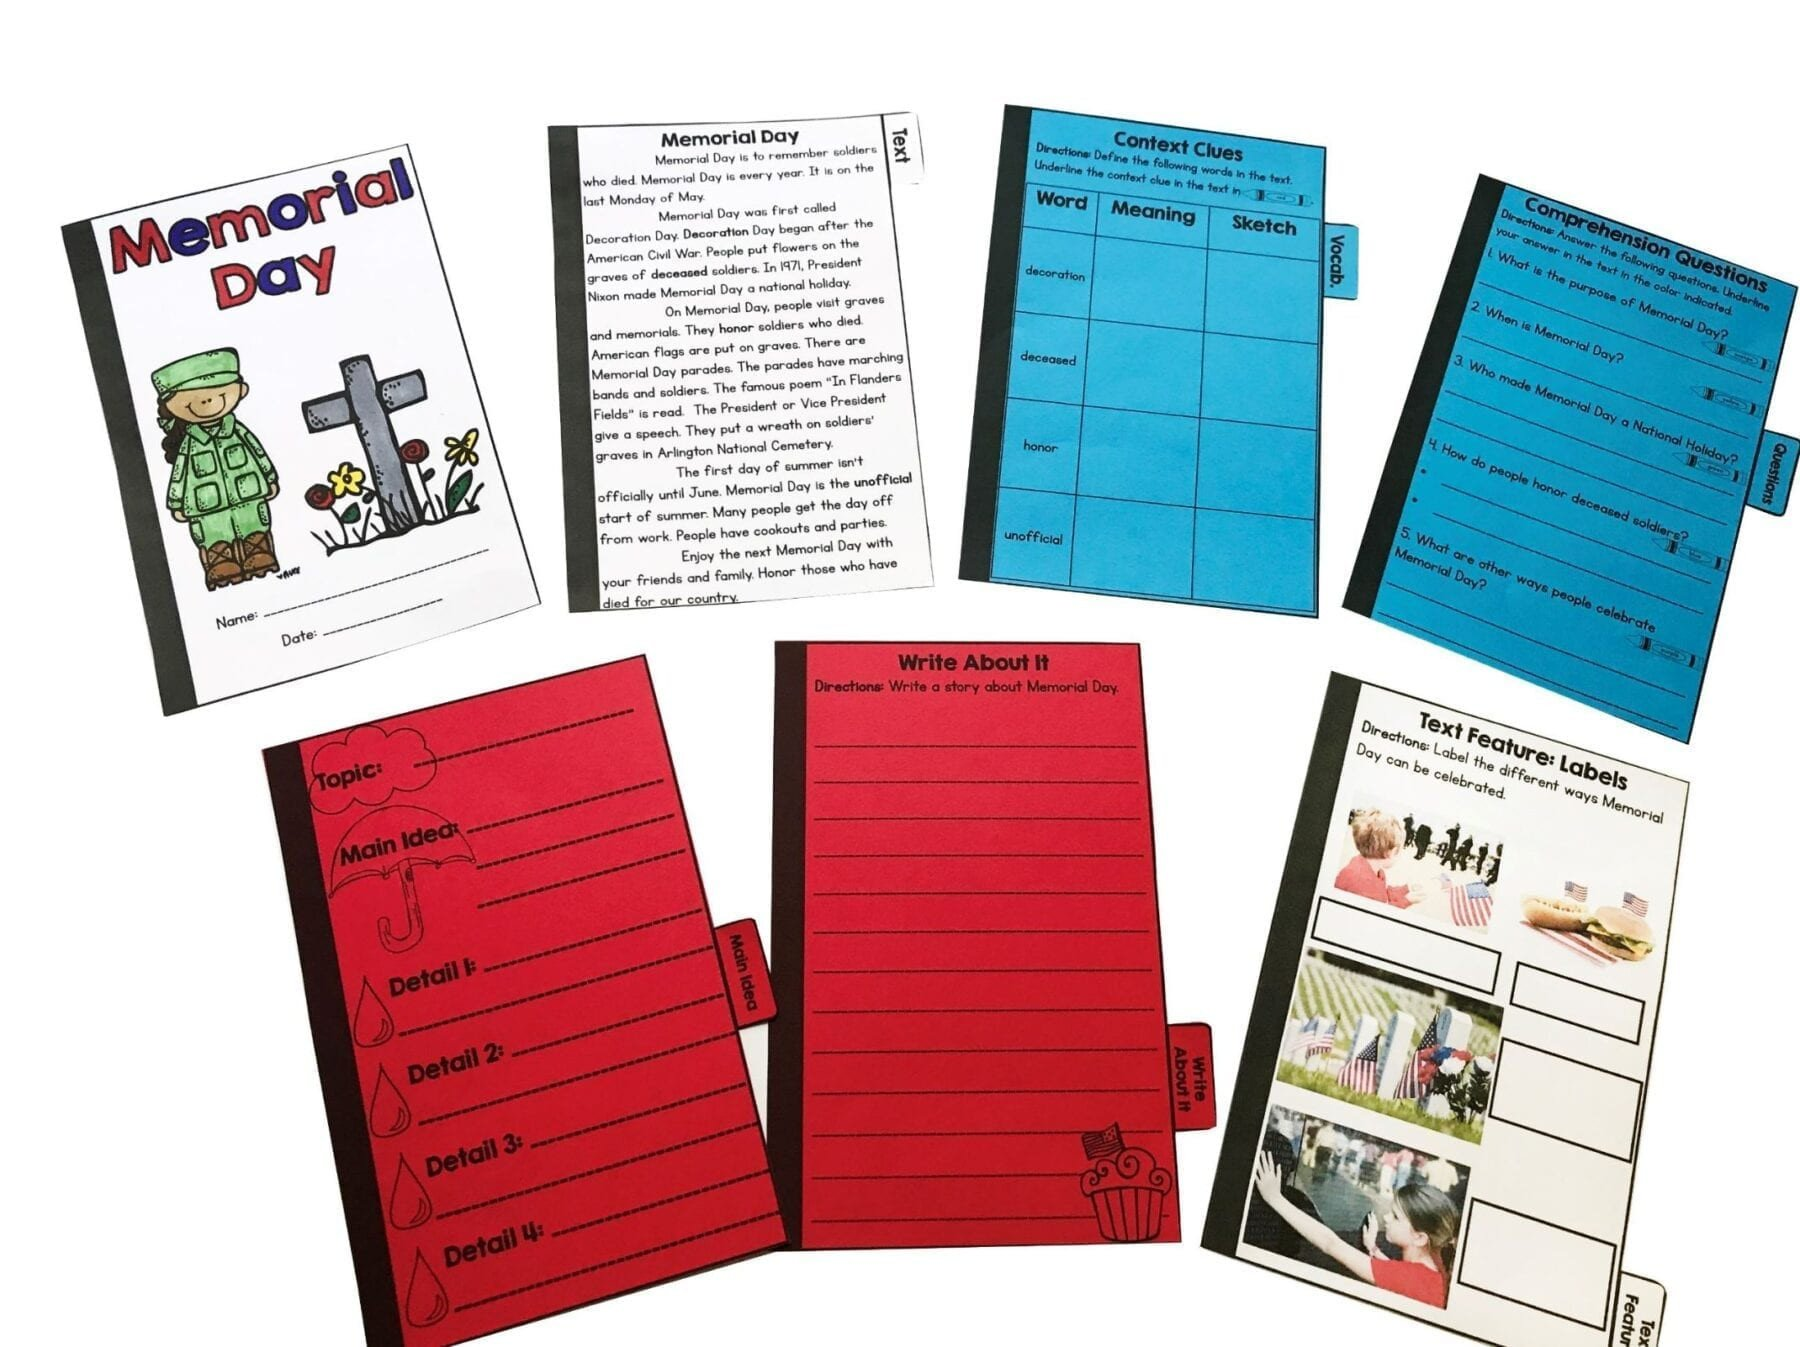 Memorial Day Reading Comprehension Worksheets Memorial Day Reading Prehension Flip Book Activities 2nd & 3rd Grade